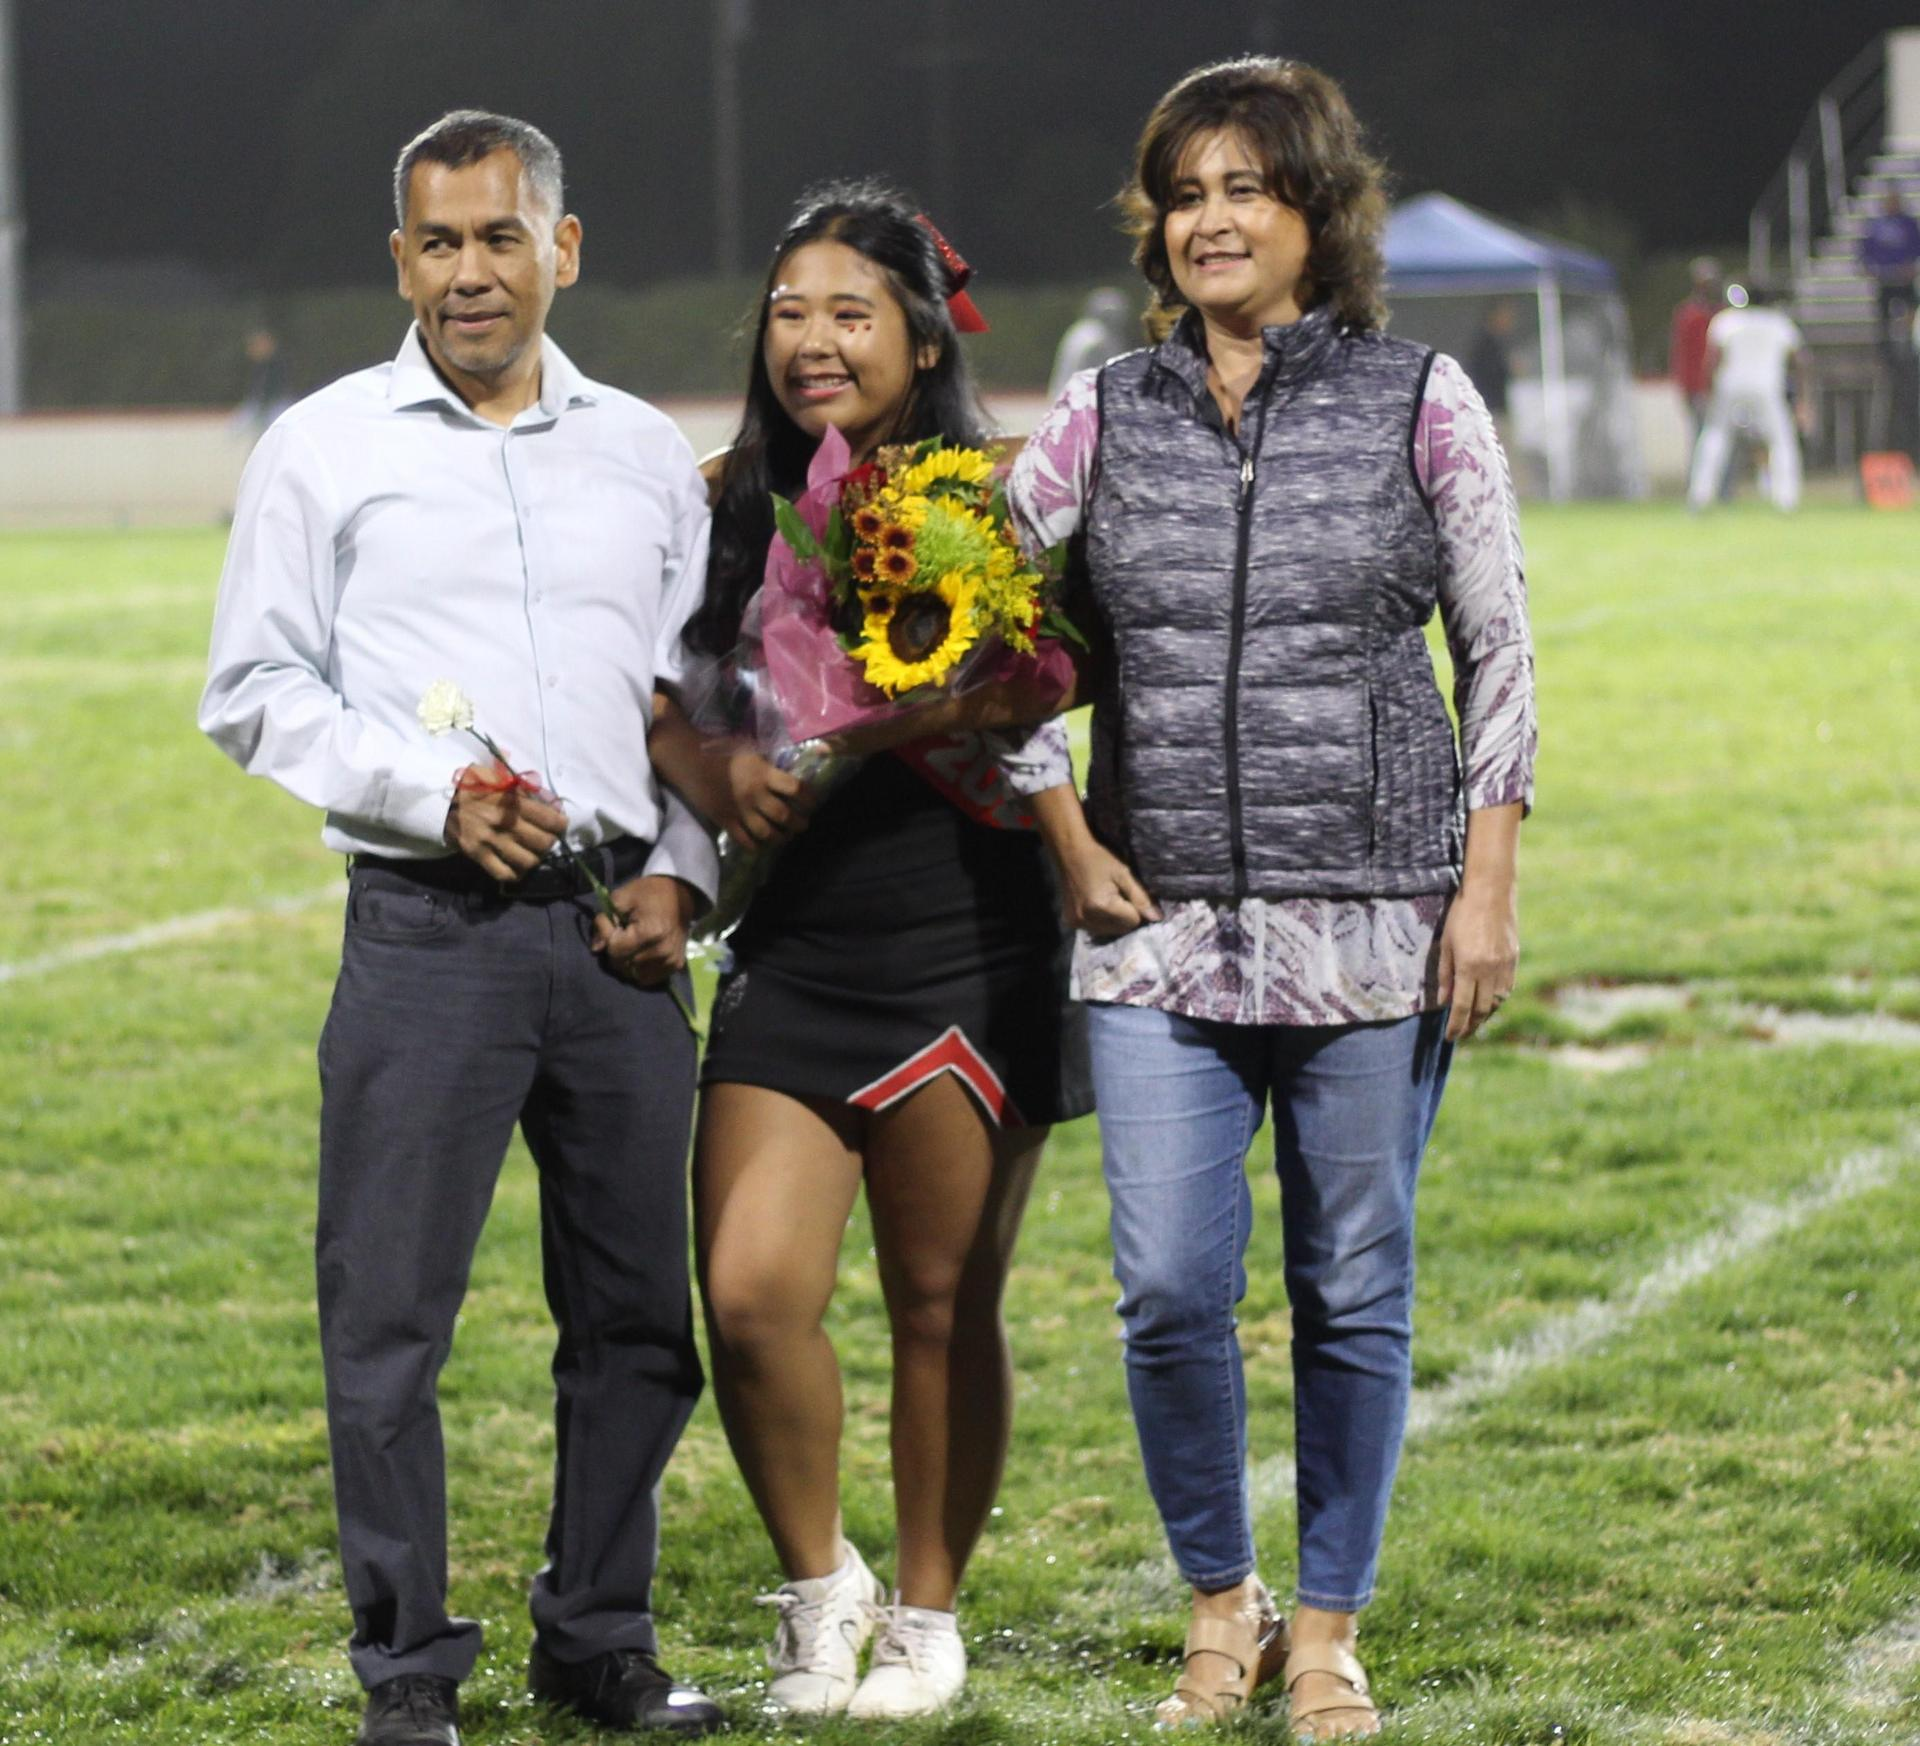 Senior cheerleader Bianca Solidum and her escorts.